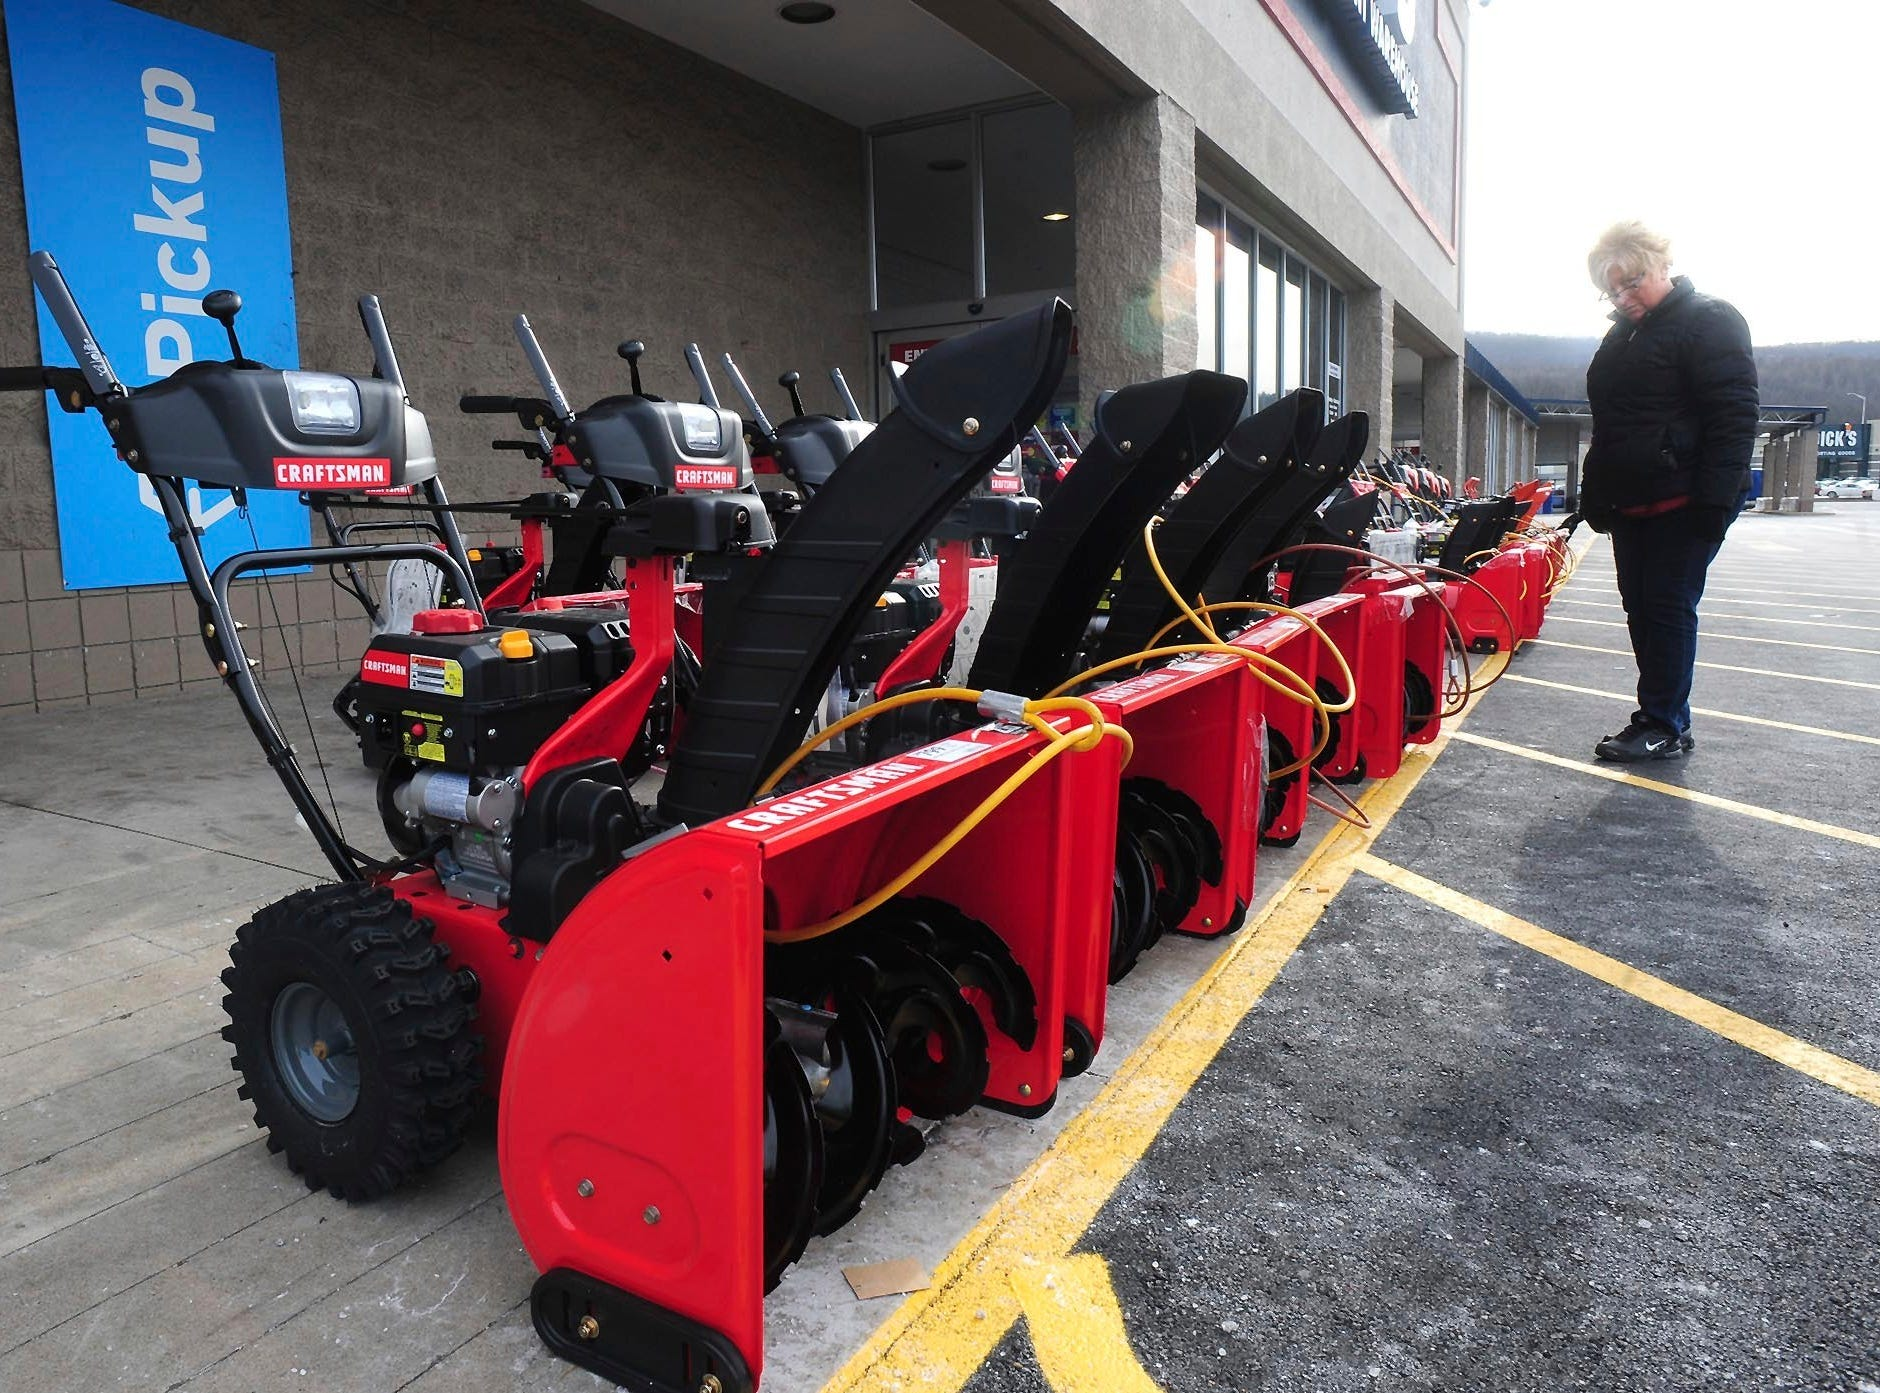 Lisa Zielecki looks over snow throwers at Lowe's, Thursday, Jan. 17, 2019, in Wilkes-Barre Township, Pa.